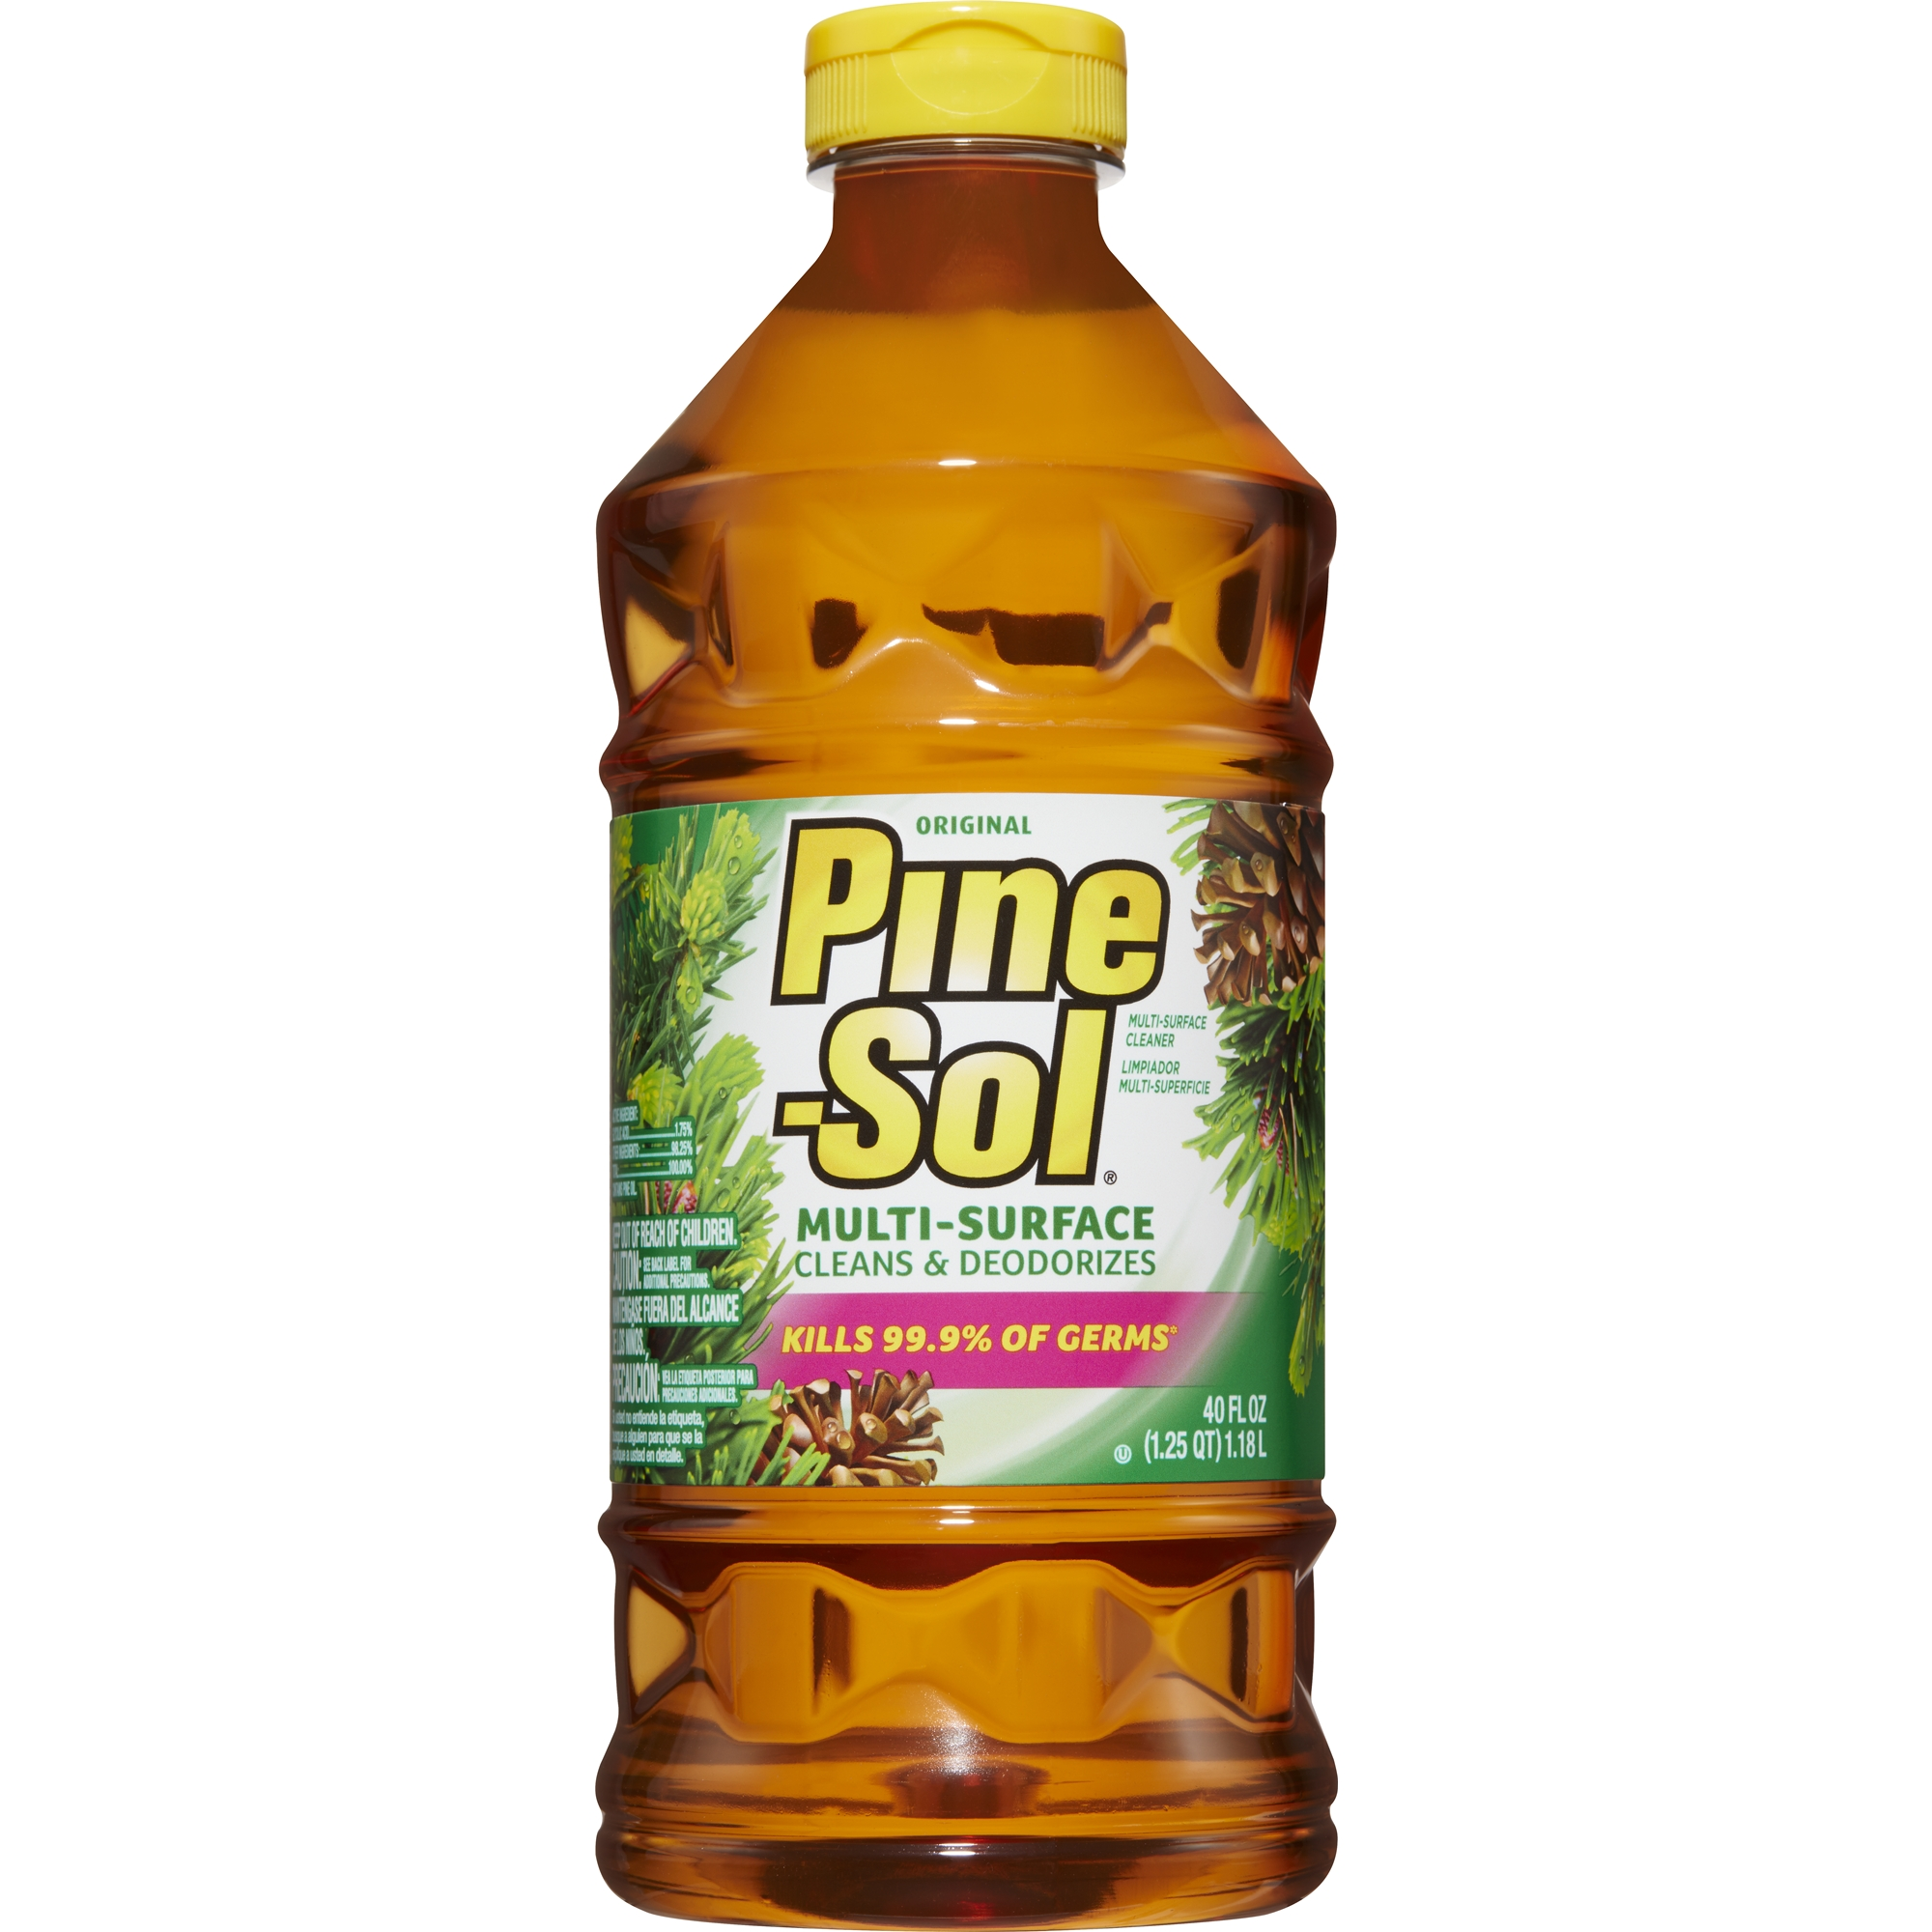 Pine-Sol Multi-Surface Cleaner, Original, 40 oz Bottle